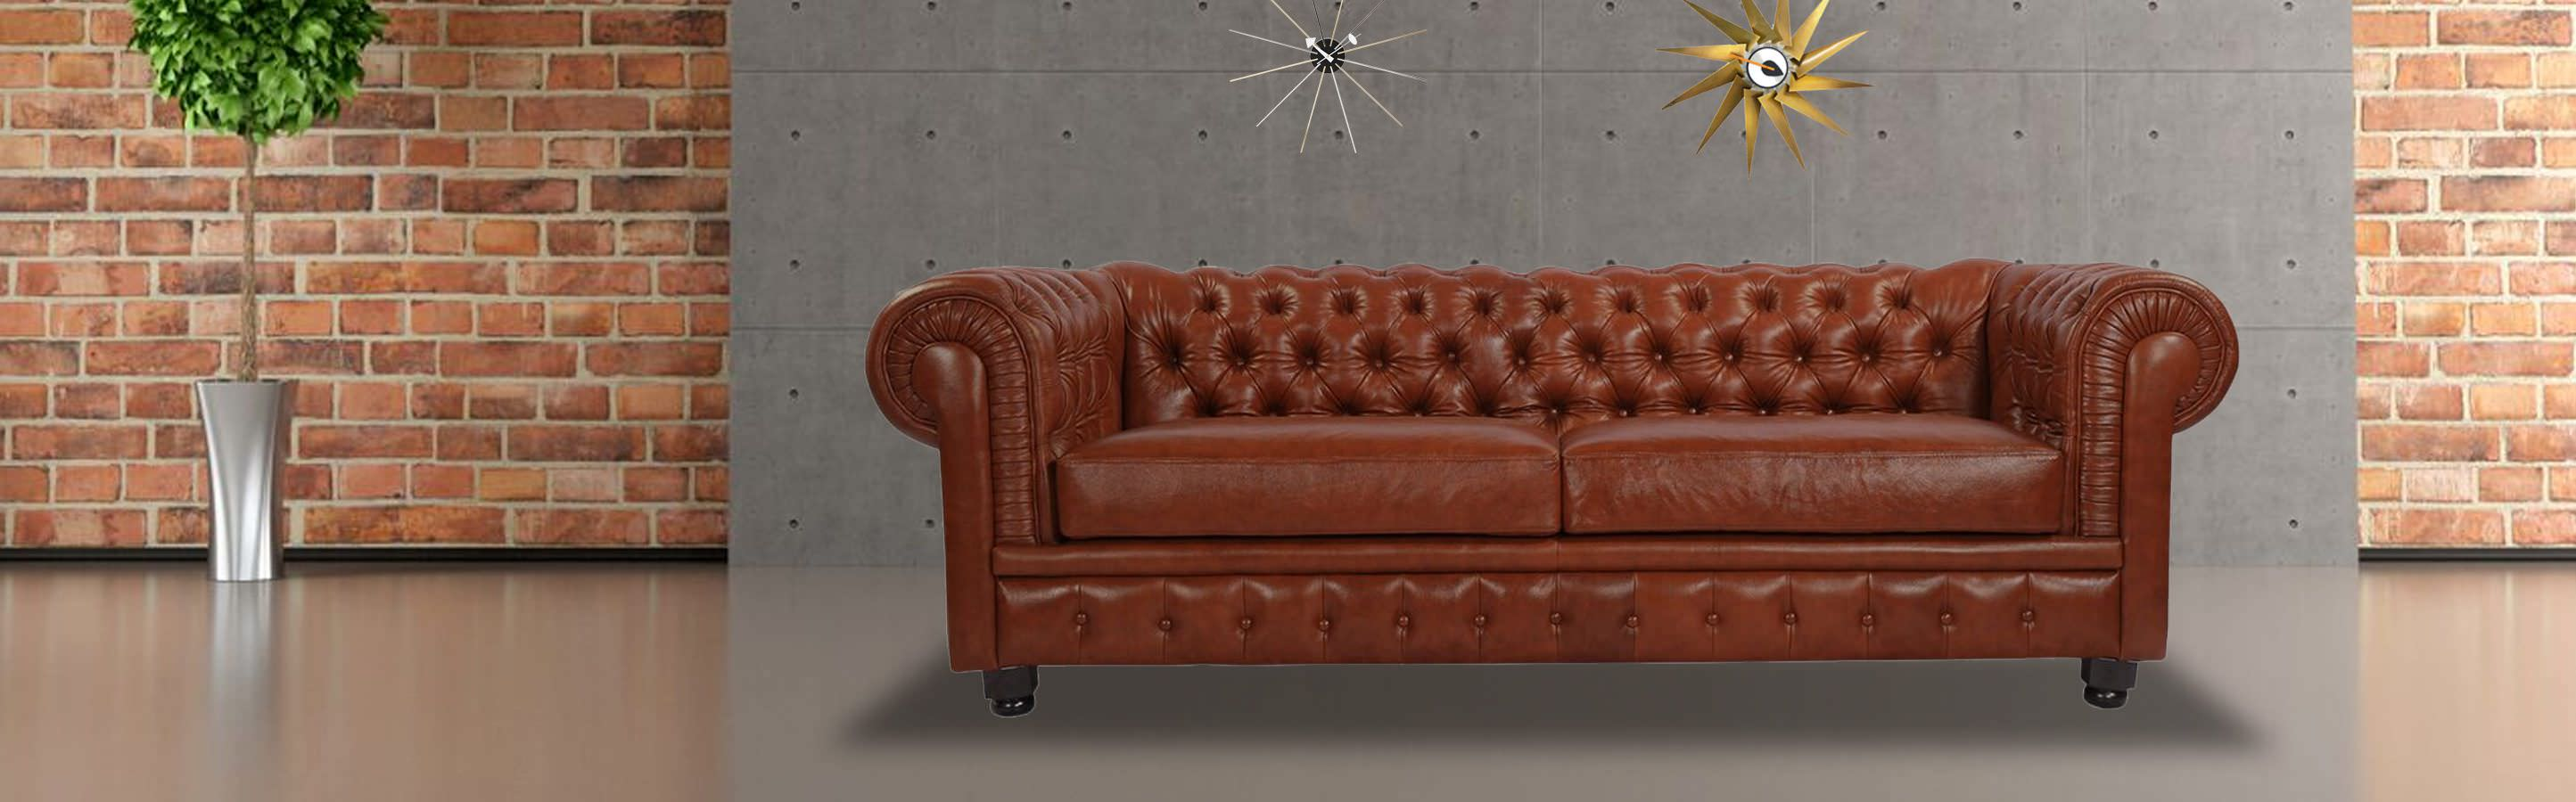 Chesterfield Sofa Bordeaux Premium Leather Kar l